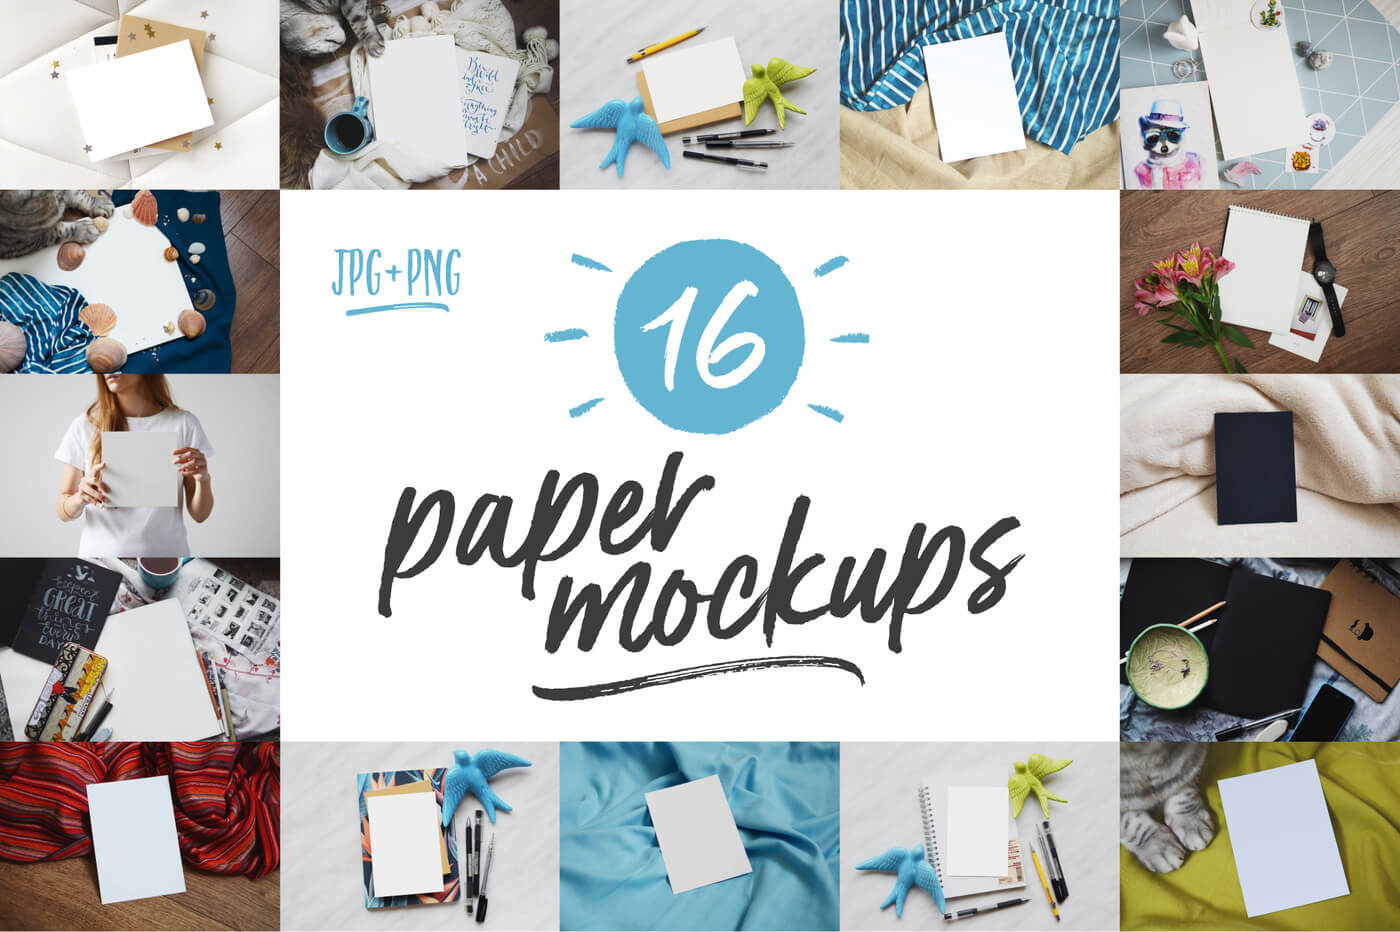 16 Paper Mockups - The Everyday Designer Bundle Vol. 03